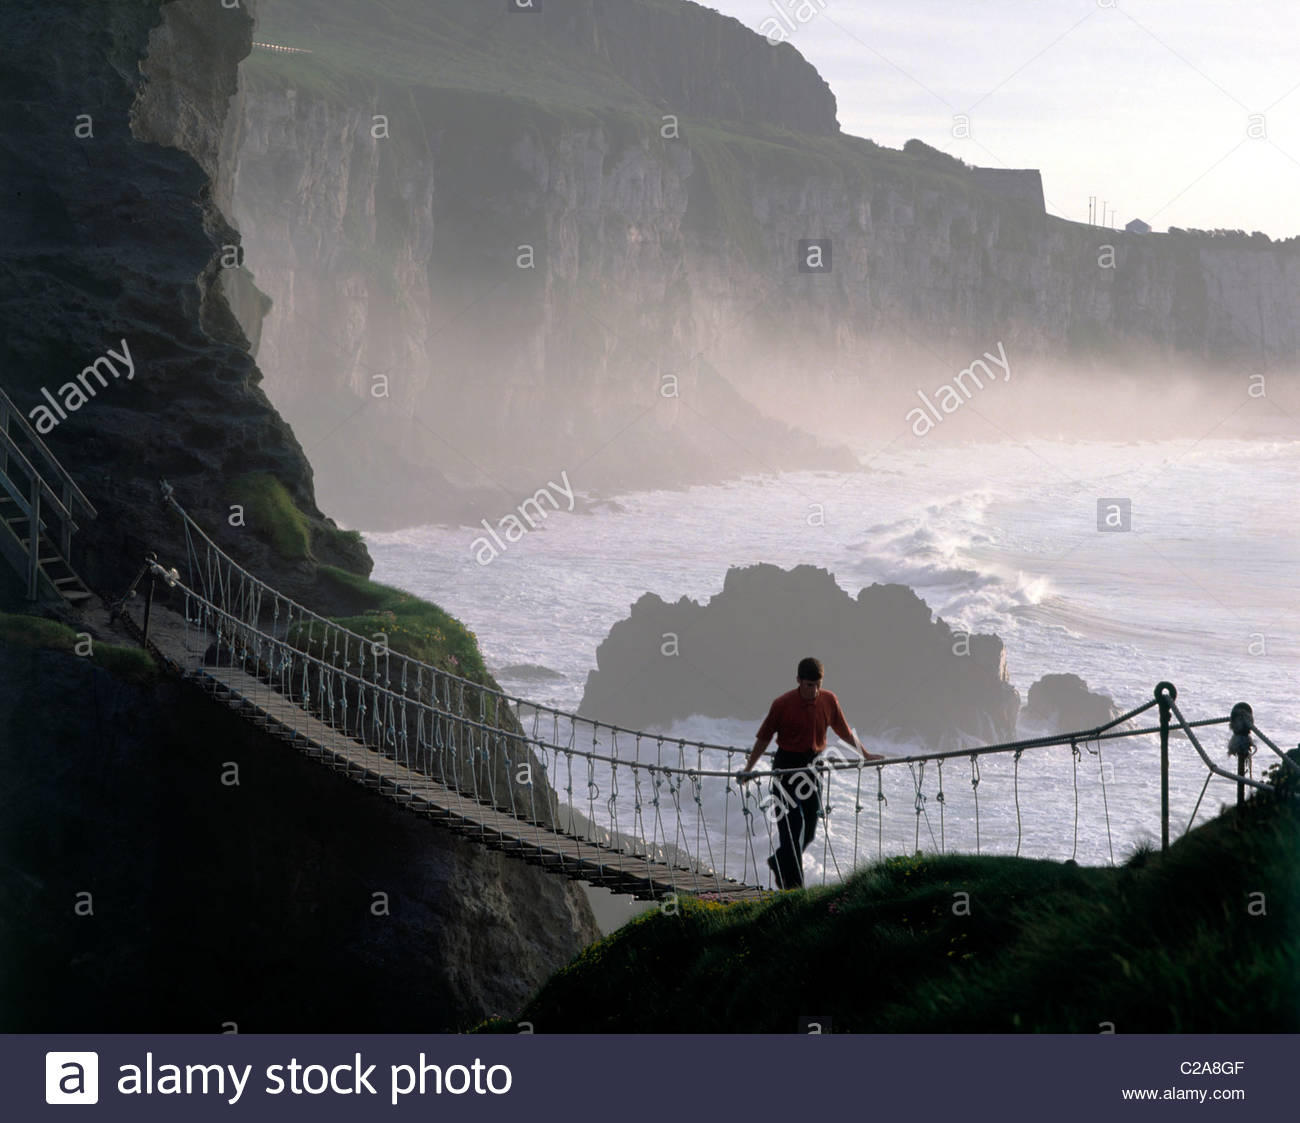 Crossing Carrick-a-rede rope bridge on the north Antrim coast. - Stock Image